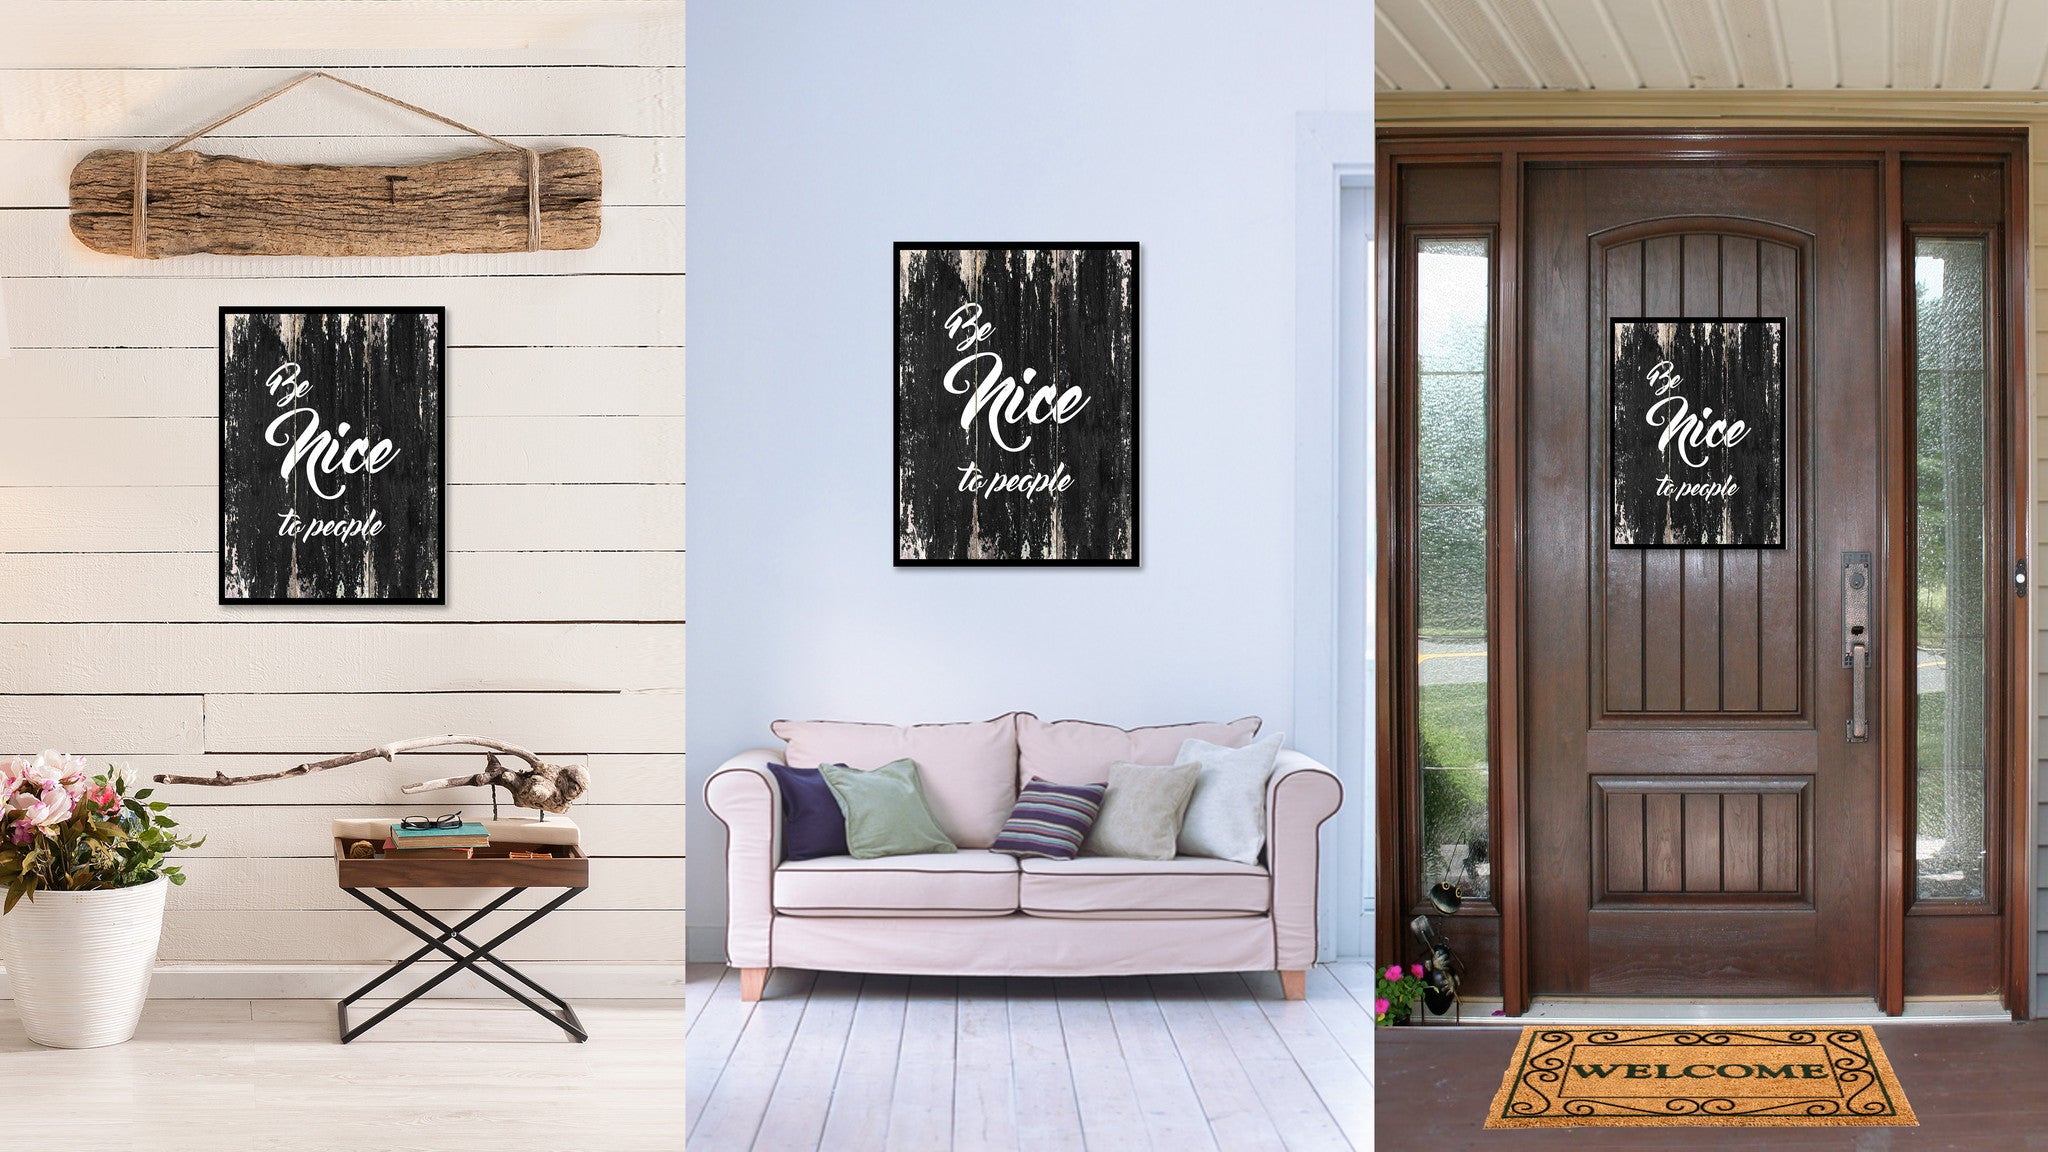 Be nice to people Motivational Quote Saying Canvas Print with Picture Frame Home Decor Wall Art